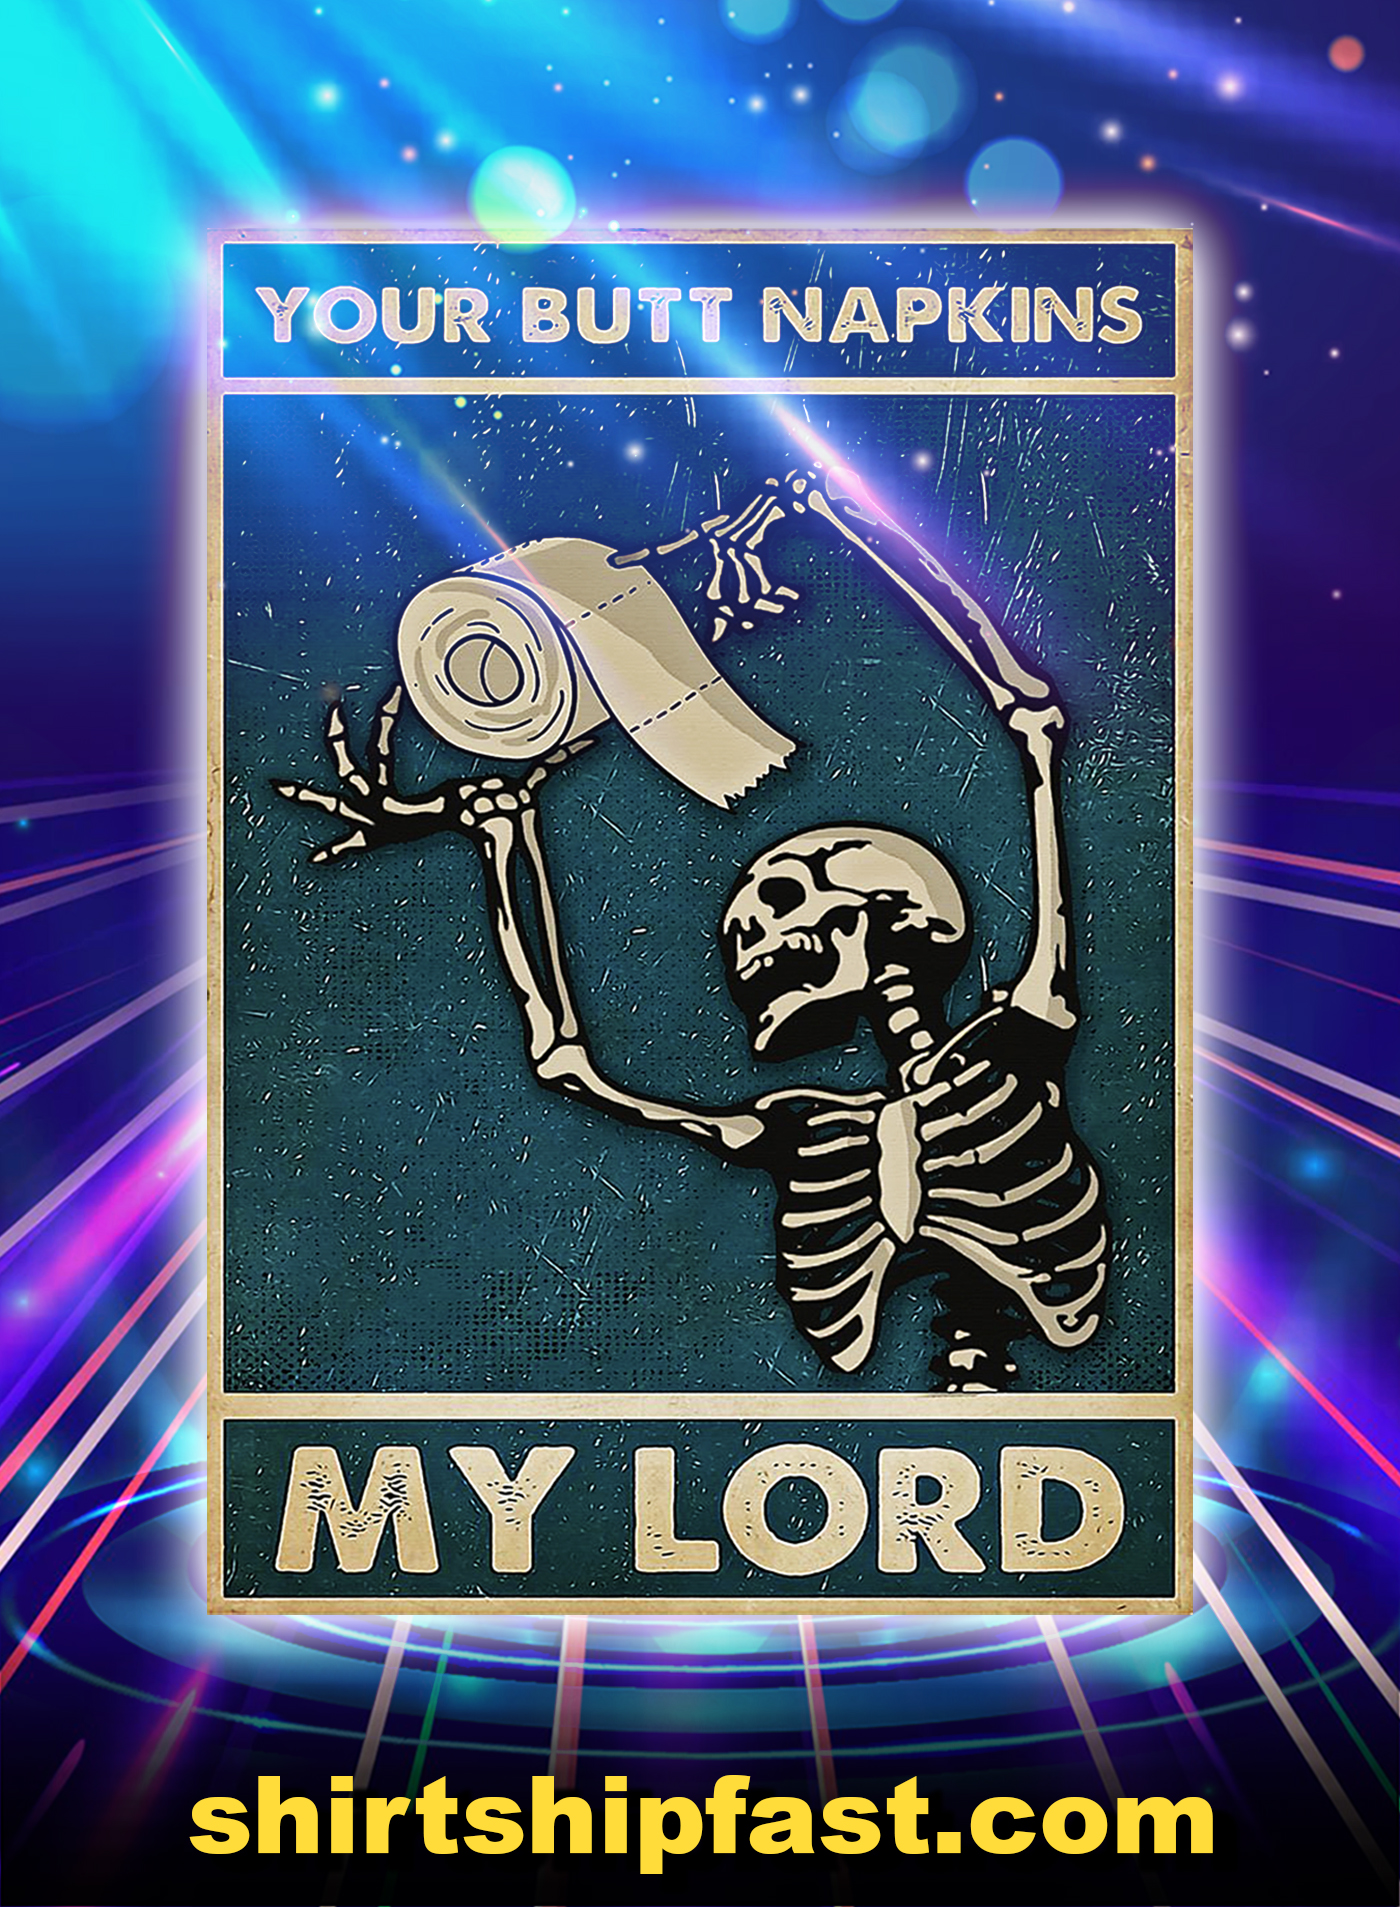 Bathroom Skull Your Butt Napkins My Lord Poster - A1